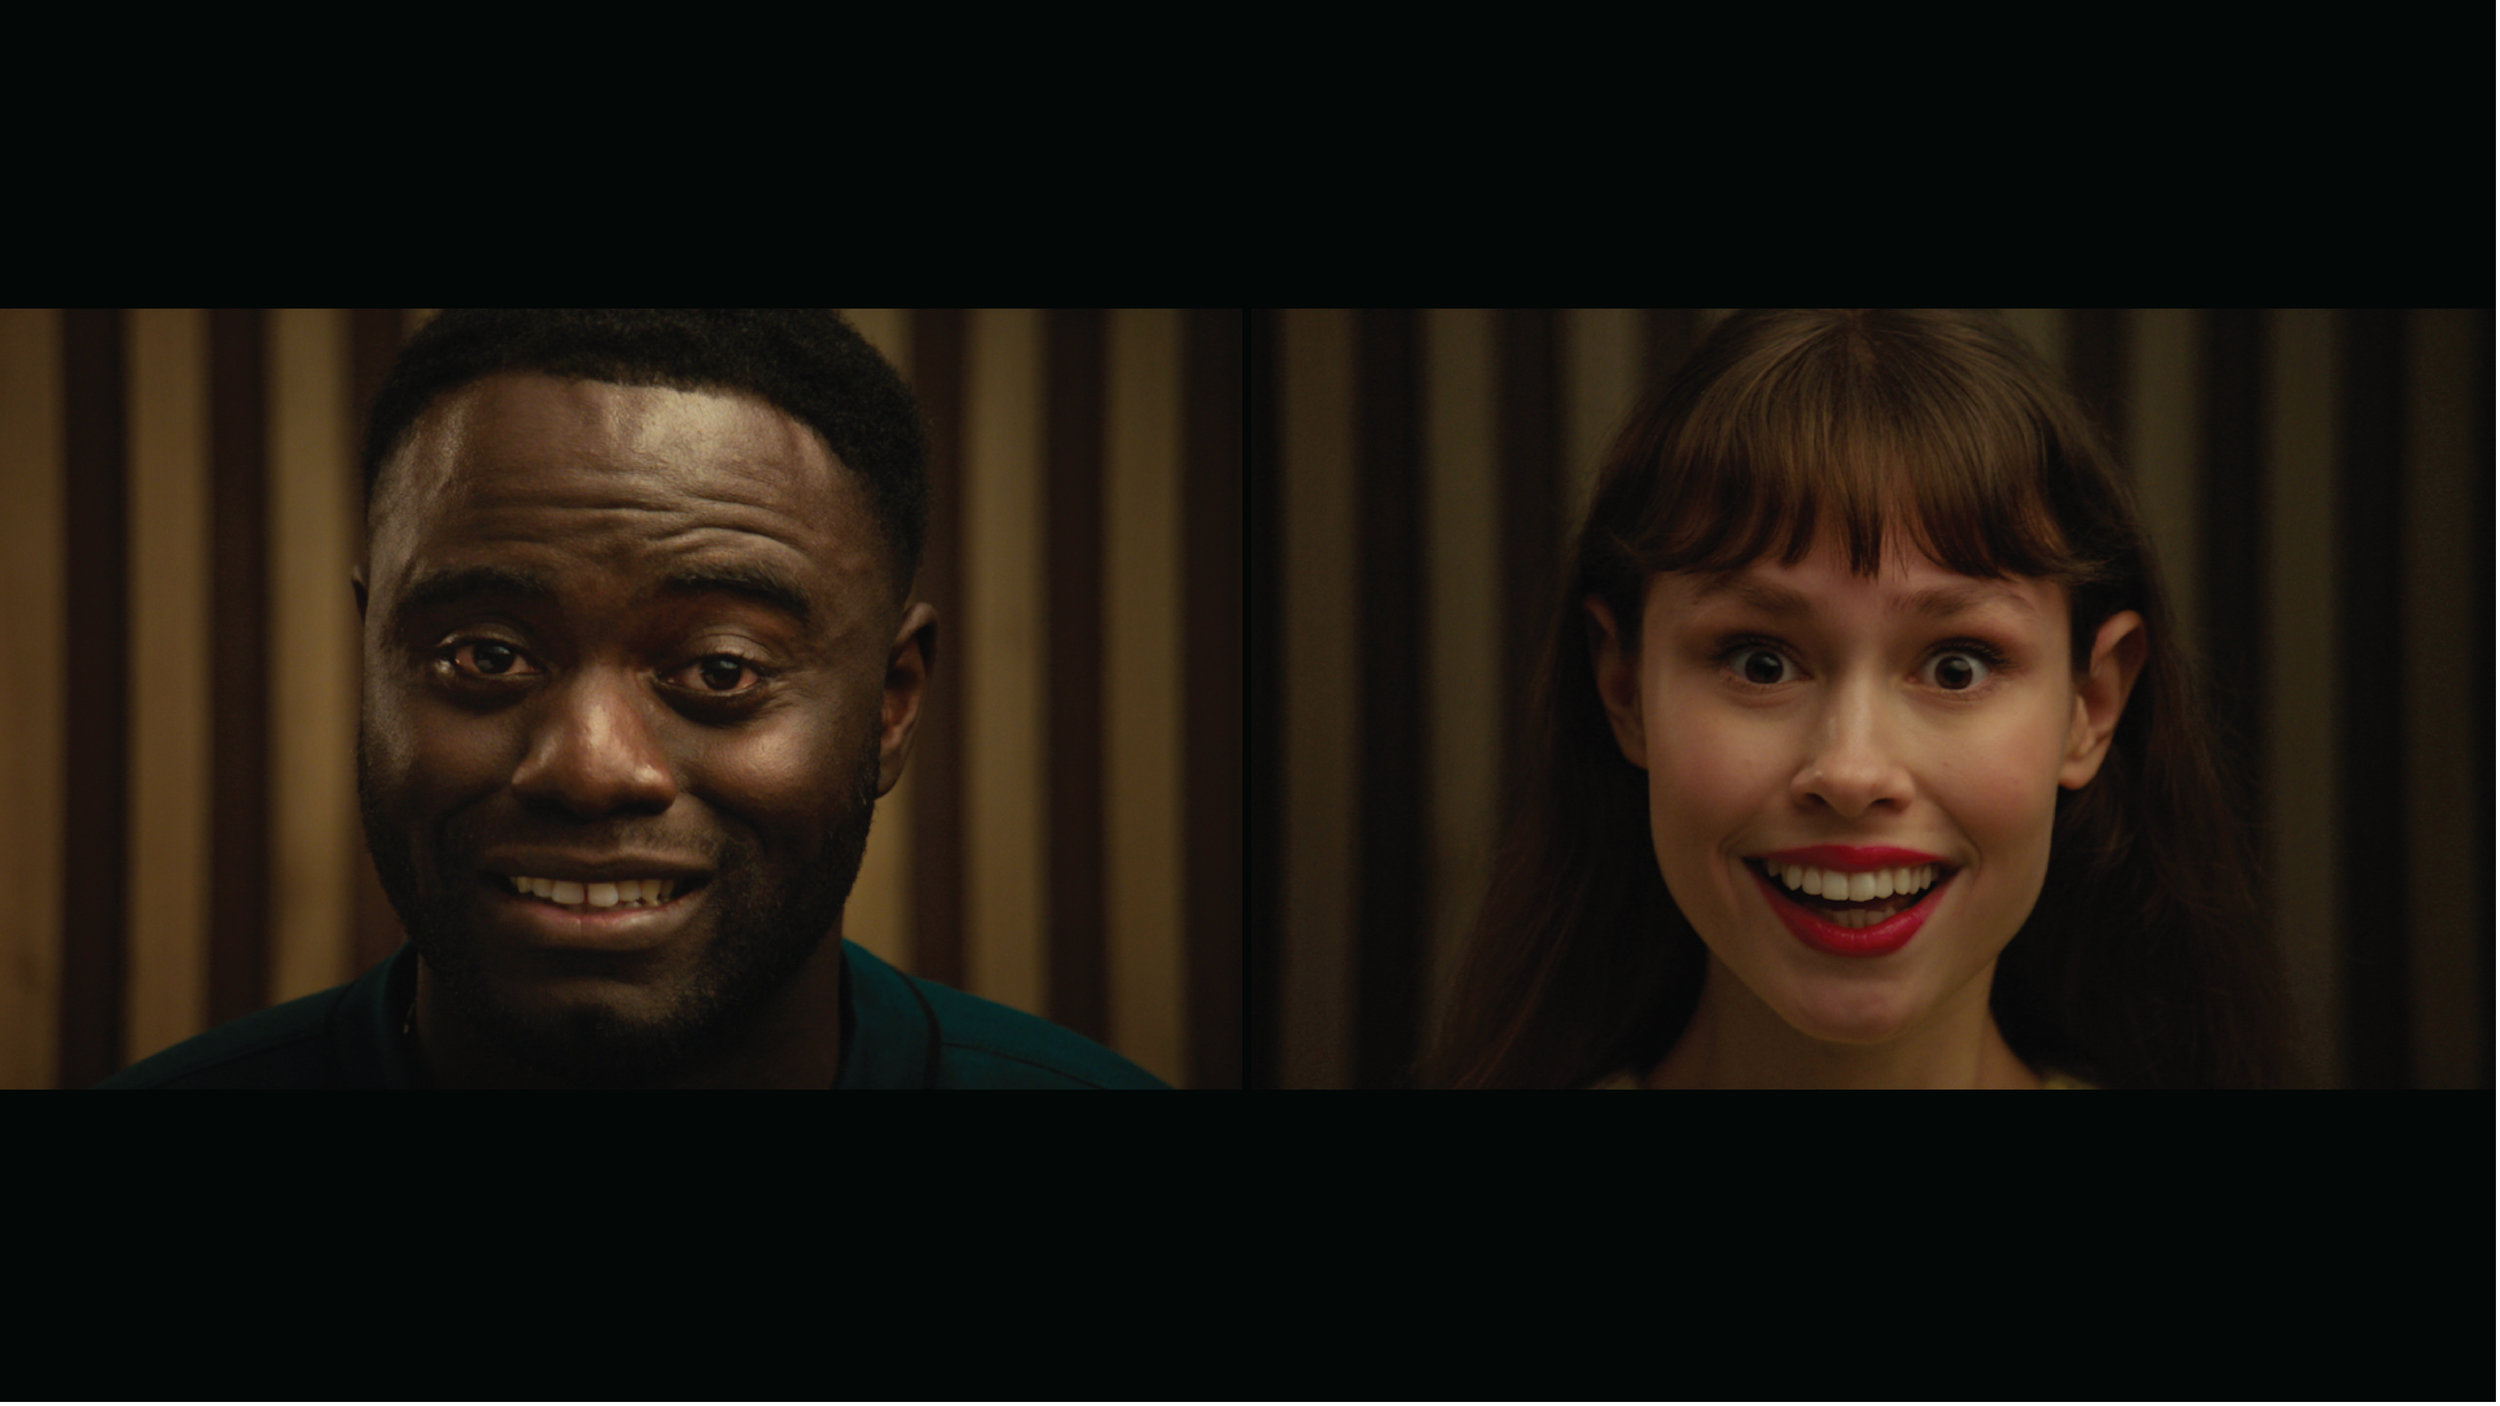 (Above) still image from 'Wilson'. From left, title character Michael Akinsulire and Lilly Smith.